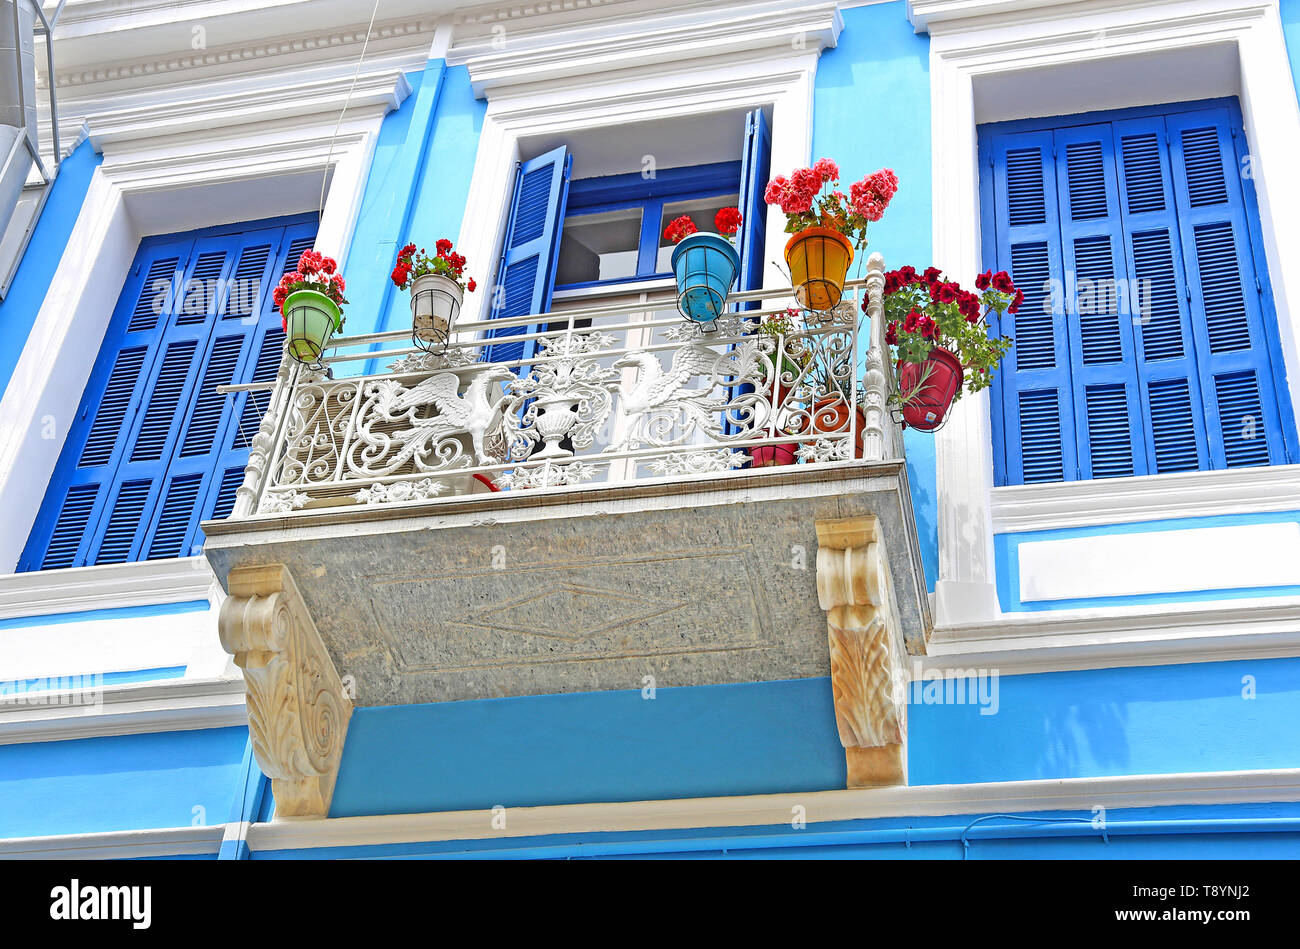 traditional house in blue and turquoise colors at Nafplio town Argolis Greece - Stock Image